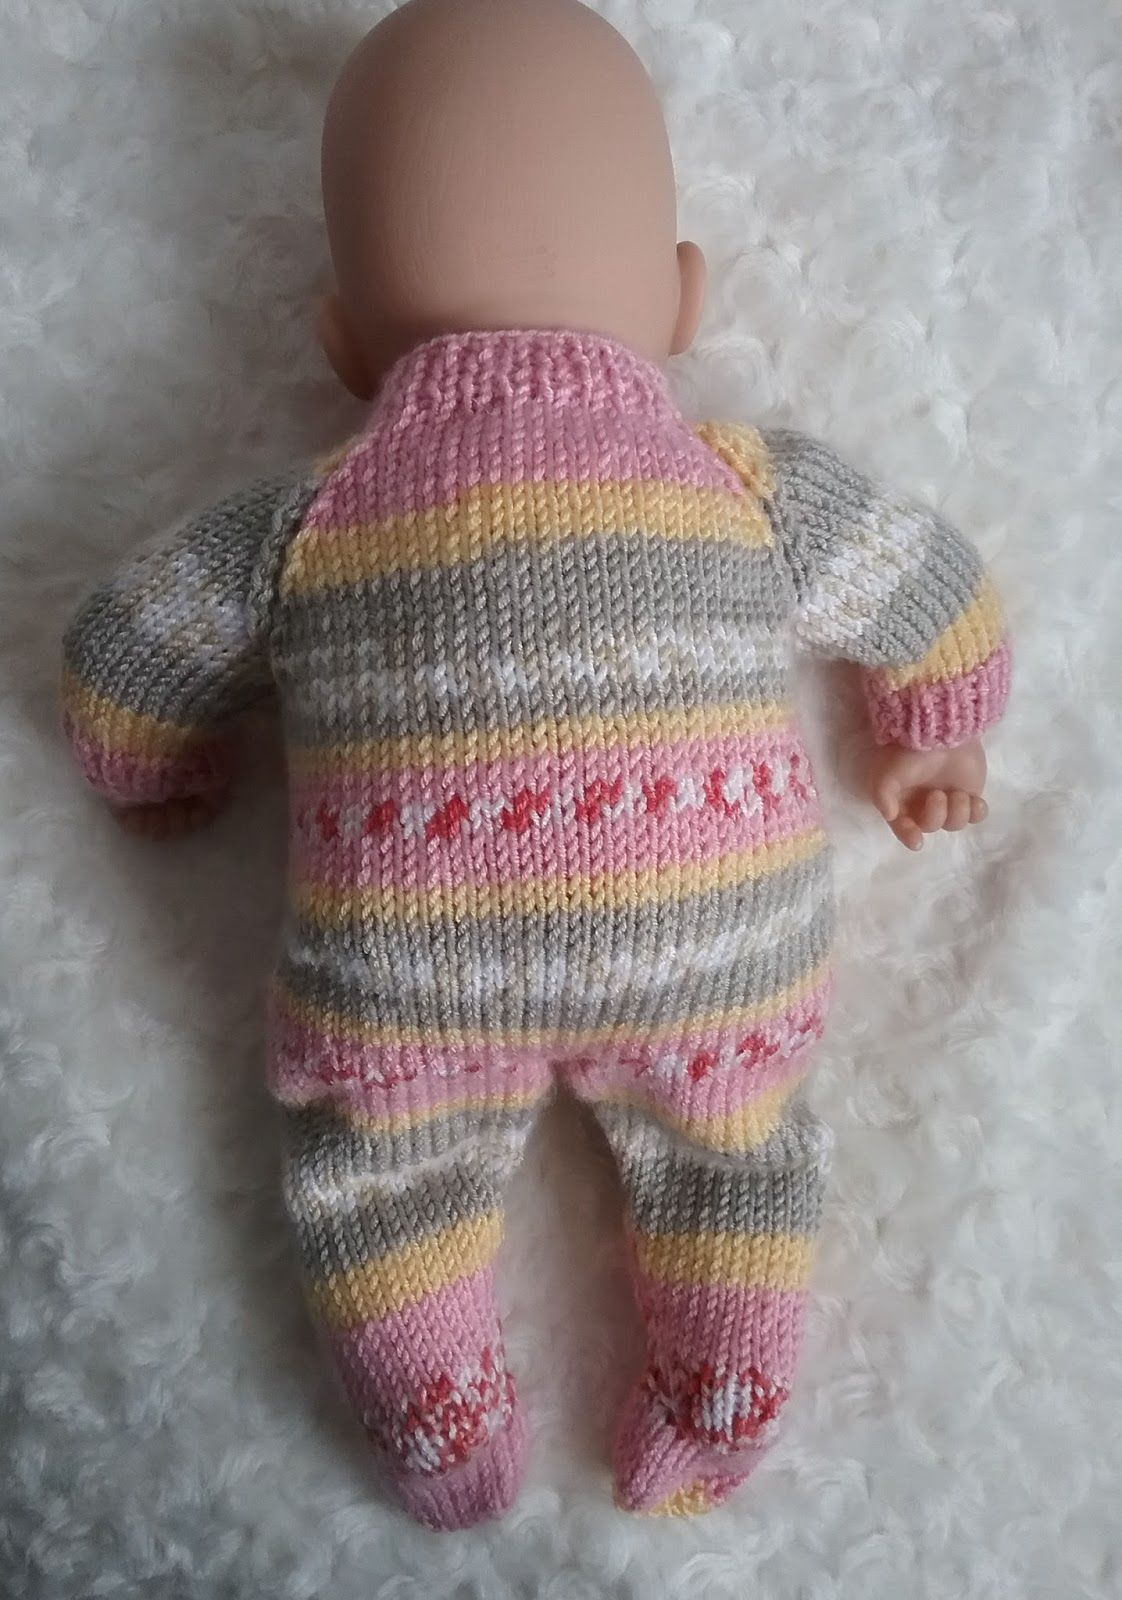 Baby Annabell Sleepsuit   Knitting dolls clothes, Crochet ...